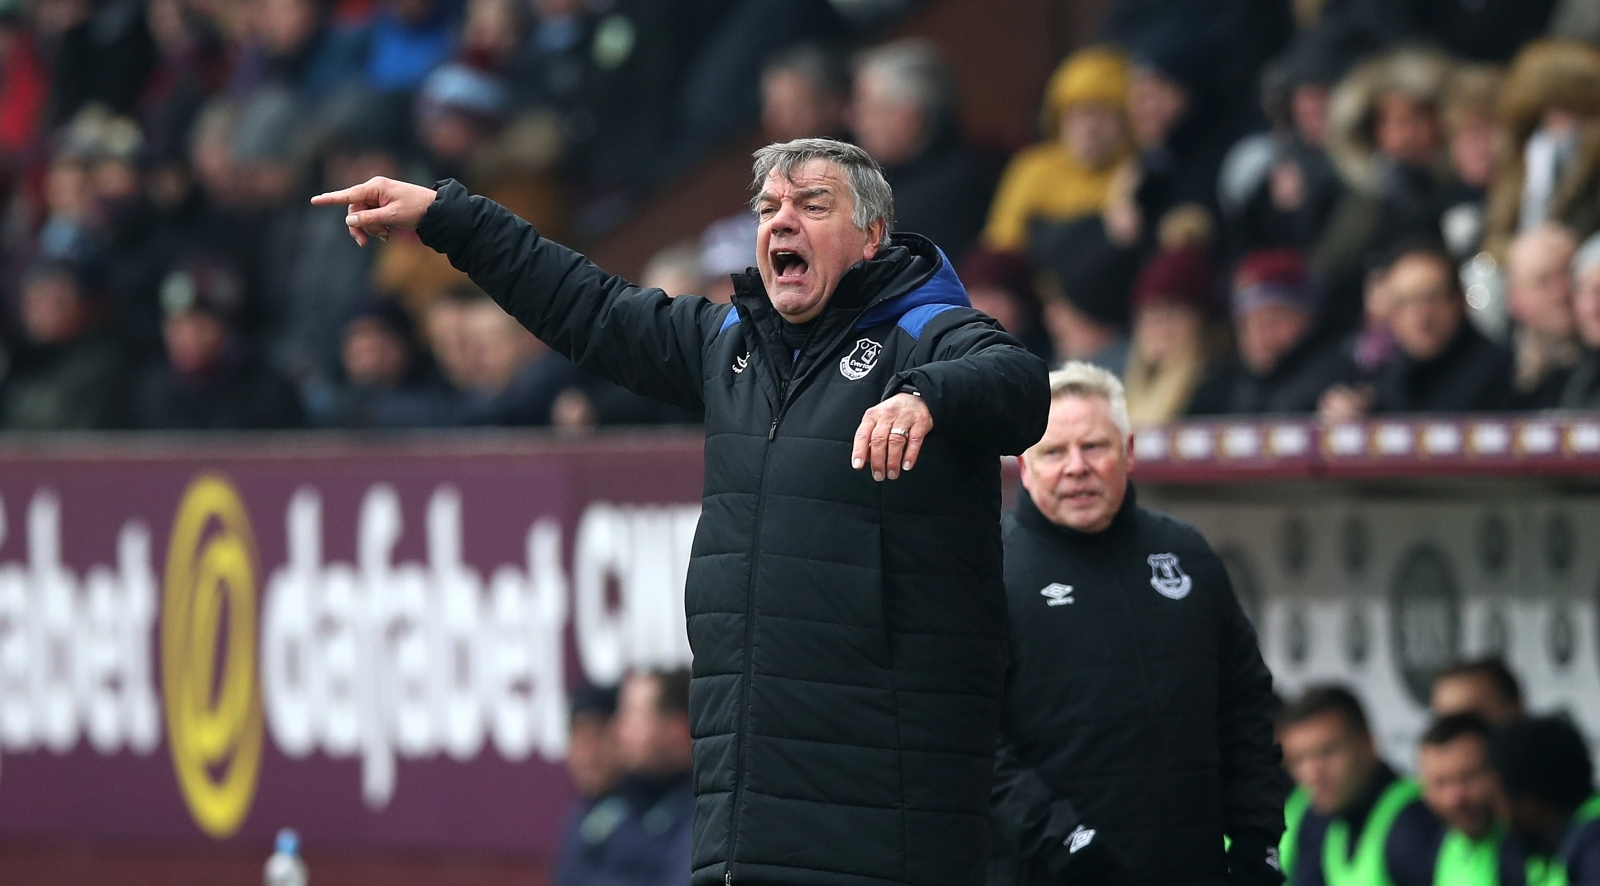 Sam Allardyce: I know I'll be sacked unless Everton start winning